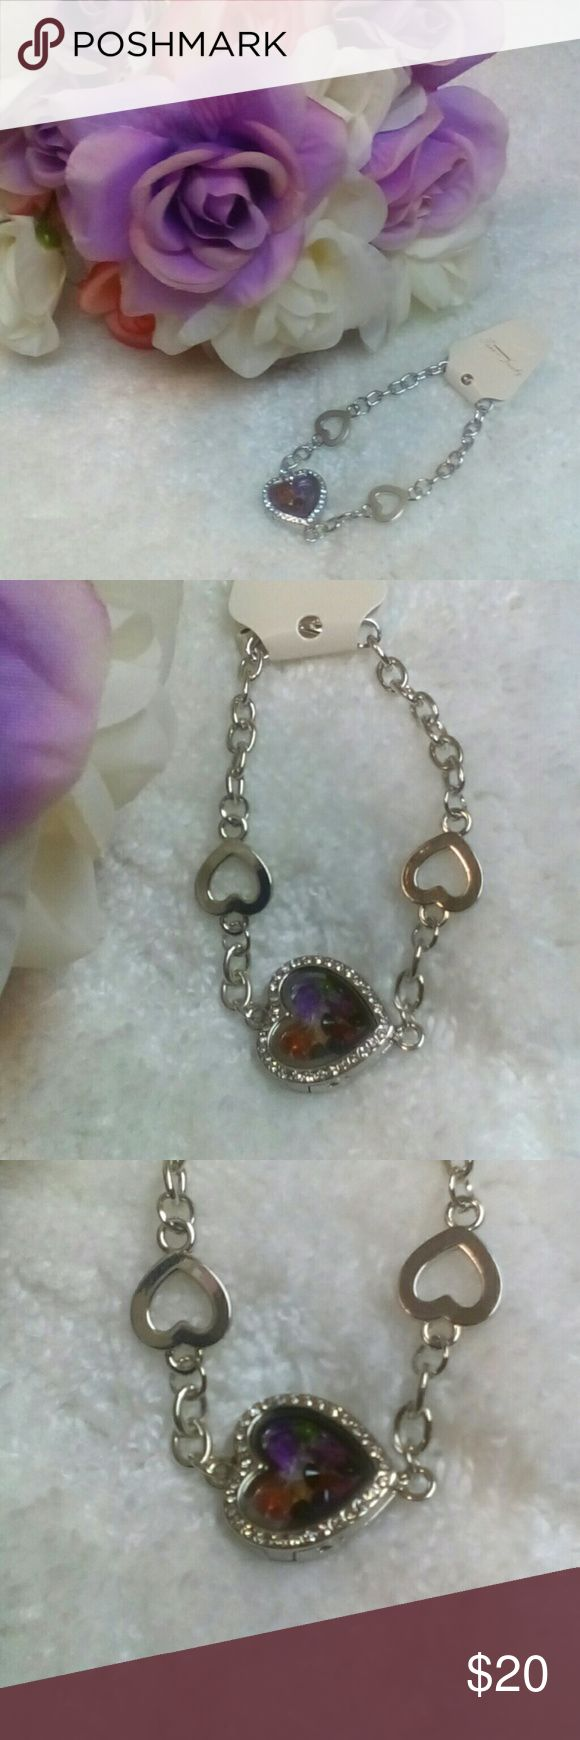 Silver Heart Living Memory Locket Bracelet It's brand new and cute. I didn't put any charms in it. Just gems.... different colors. I can add a charm or 2 of what u want. Just let me know. It's definitely precious to wear on ur wrist. Makes a wonderful gift as well. Jewelry Bracelets